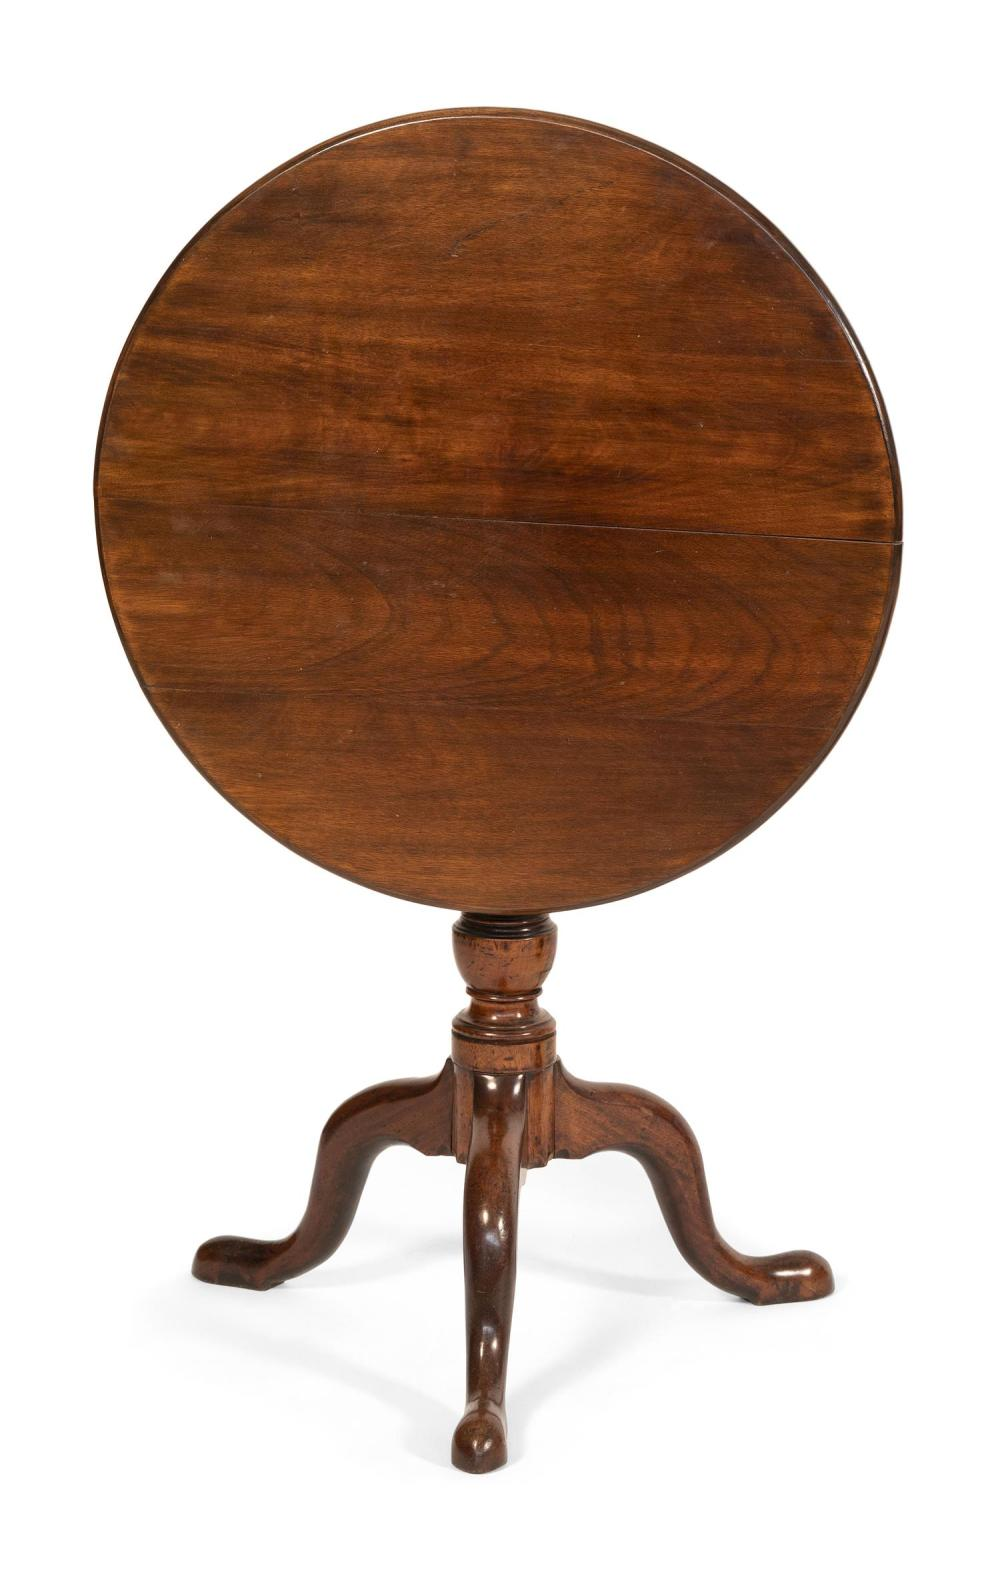 GEORGE II TILT-TOP TEA TABLE In mahogany. Circular top with birdcage mounts. Turned pedestal raised on cabriole legs ending in bold...